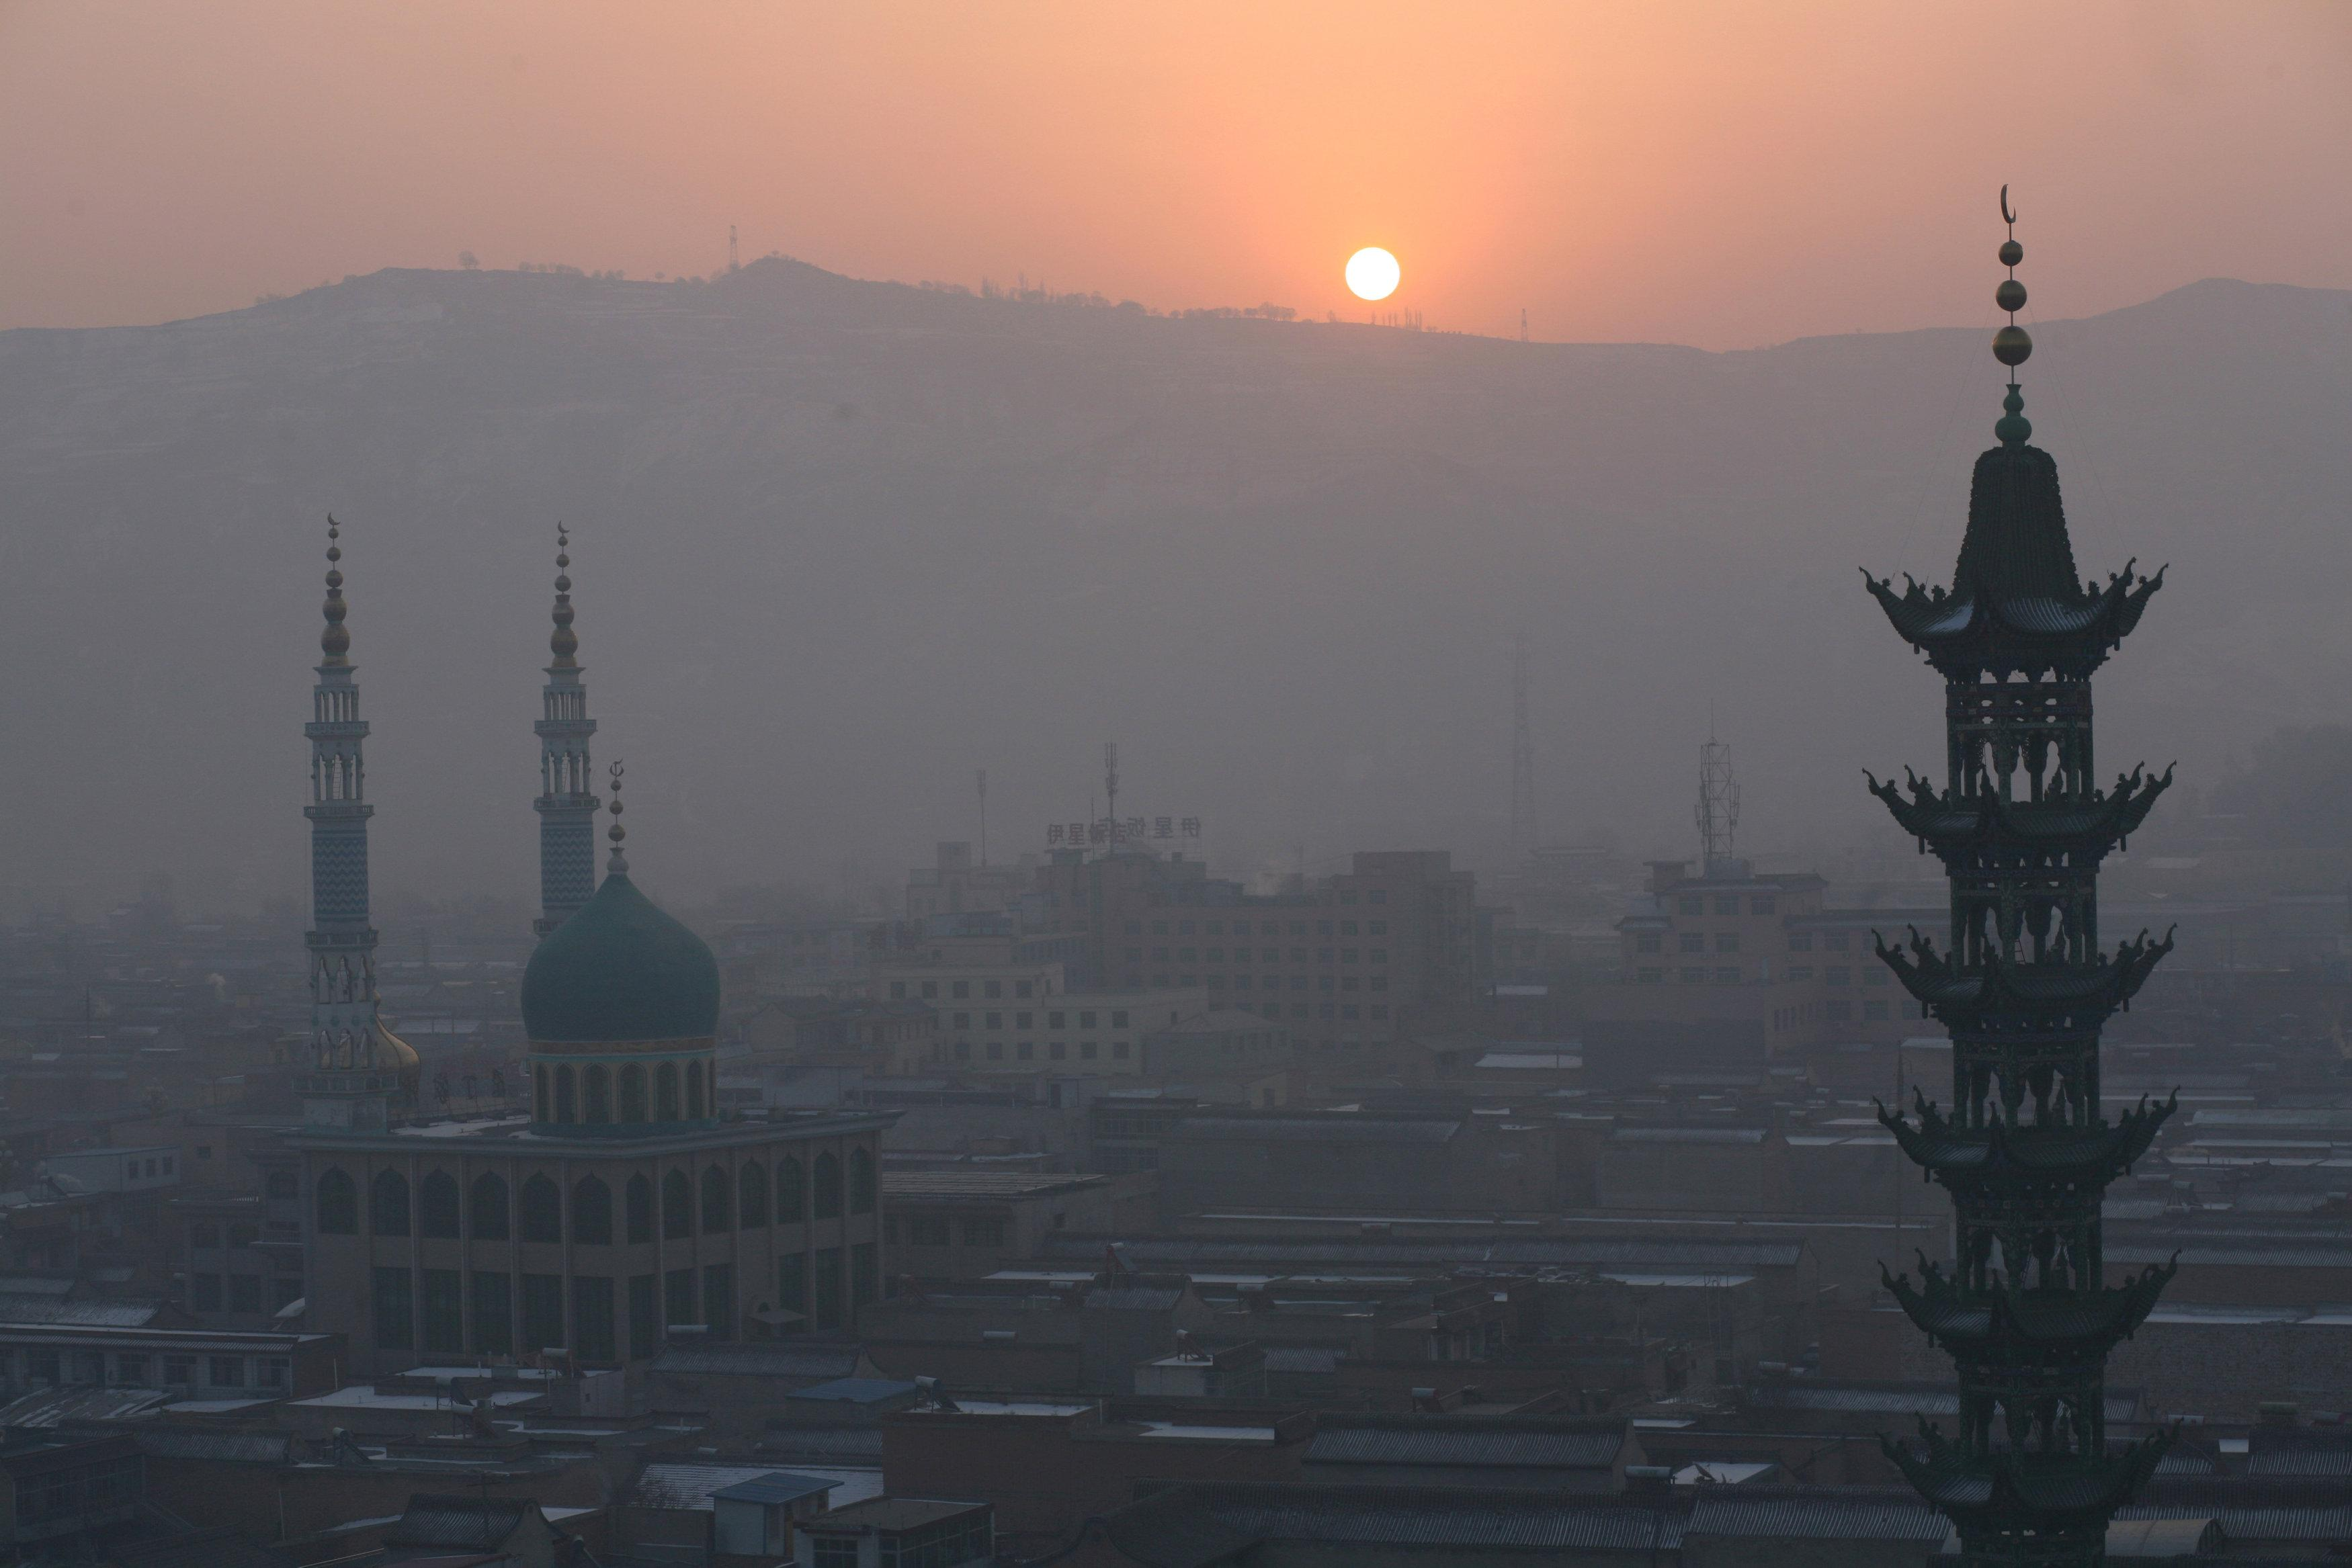 The sun rises over mountains and mosques in China's Linxia, Gansu province, home to a large population of ethnic minority Hui Muslims, February 3, 2018. Picture taken February 3, 2018. Michael Martina